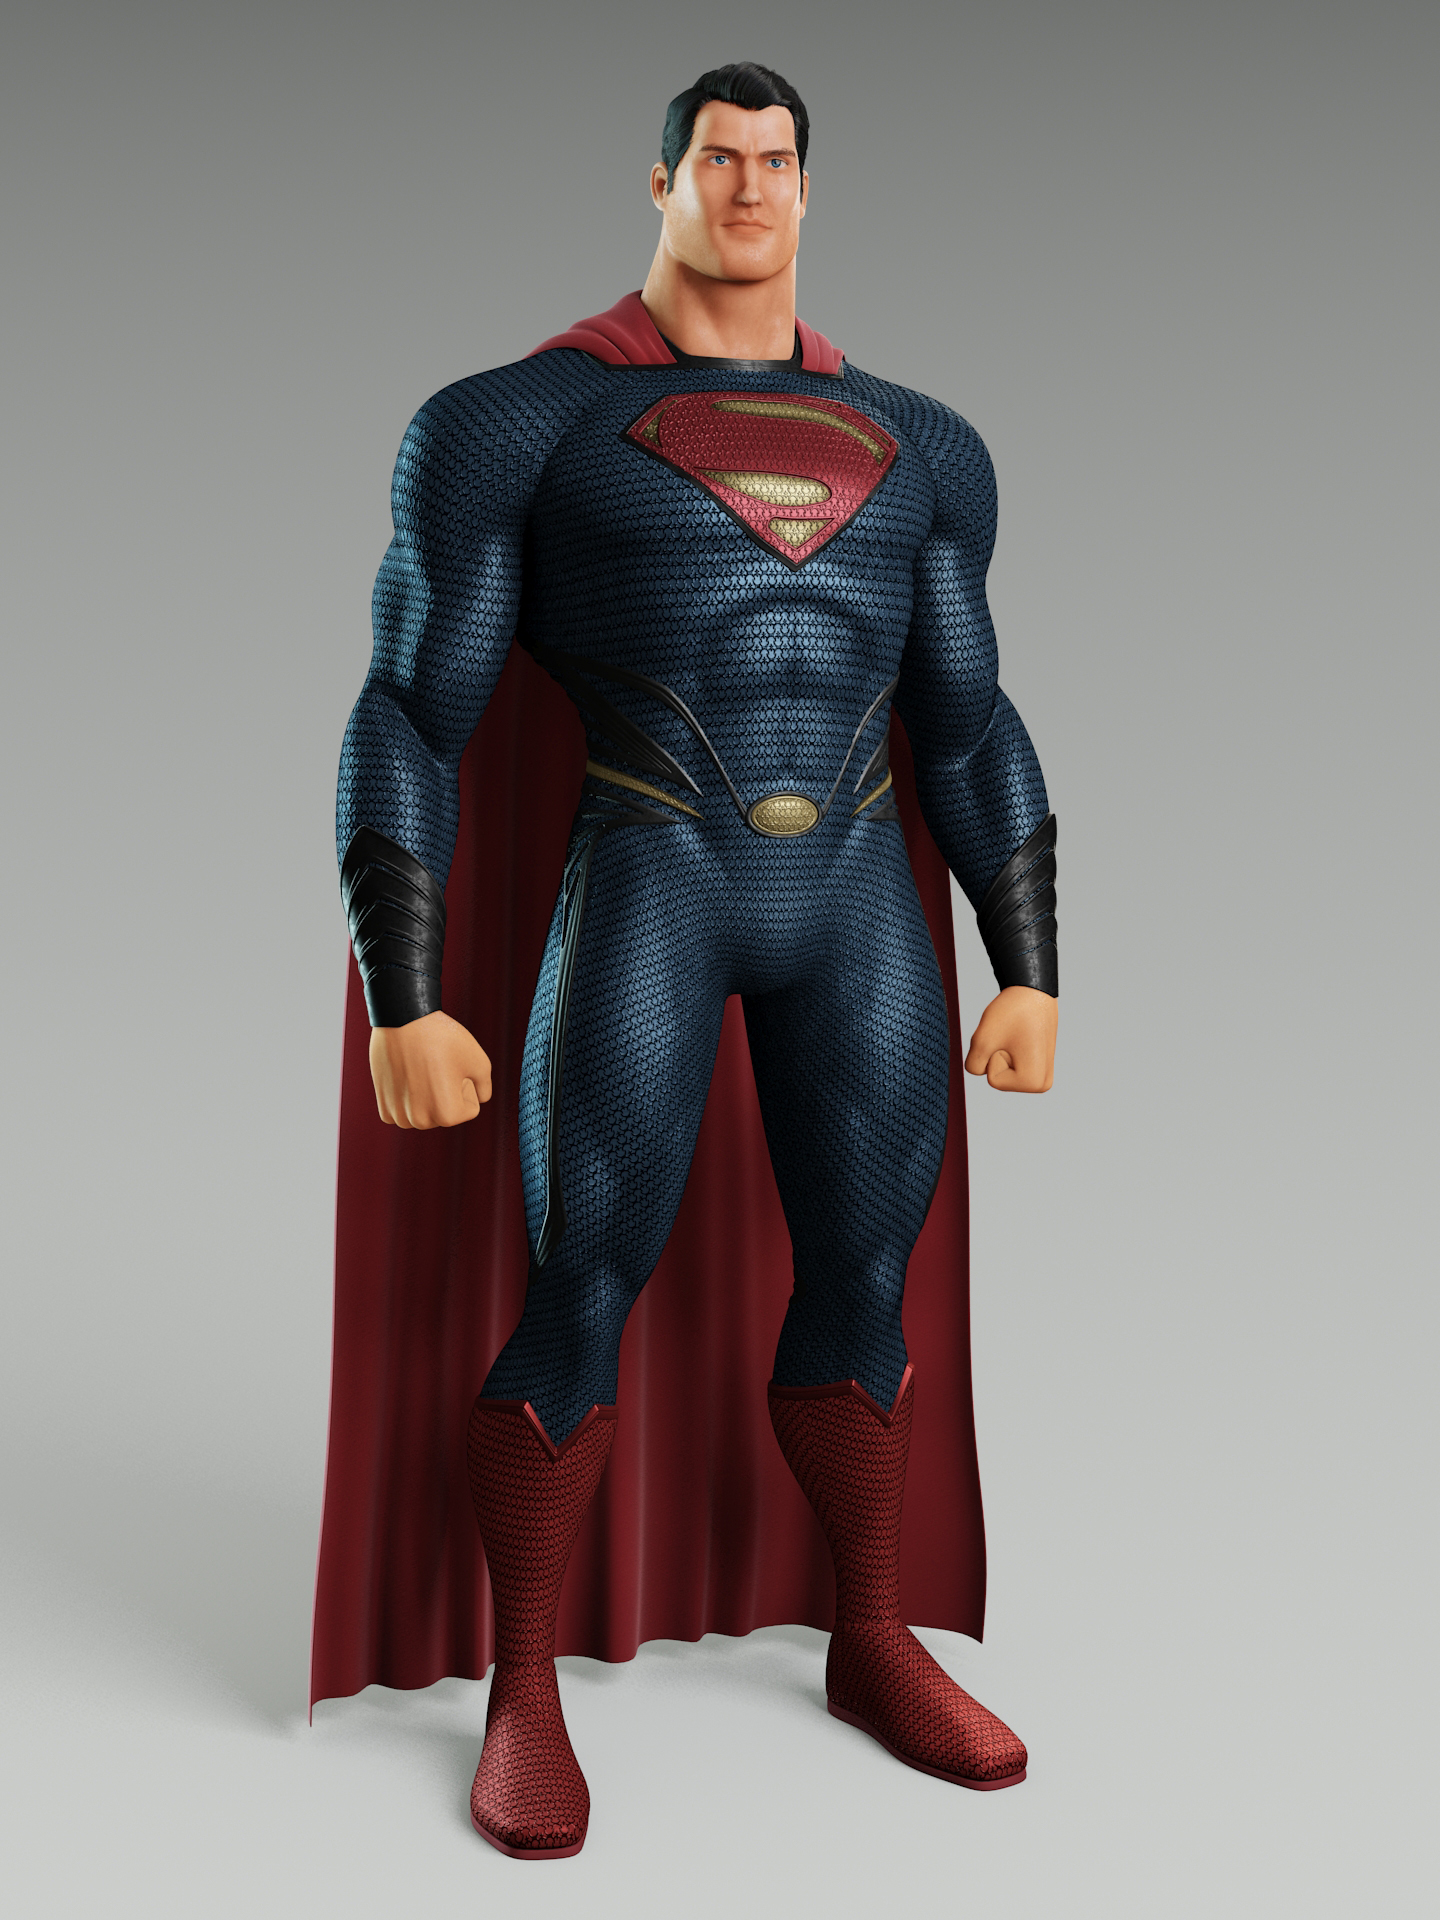 MAN OF STEEL SUPERMAN by alejit0